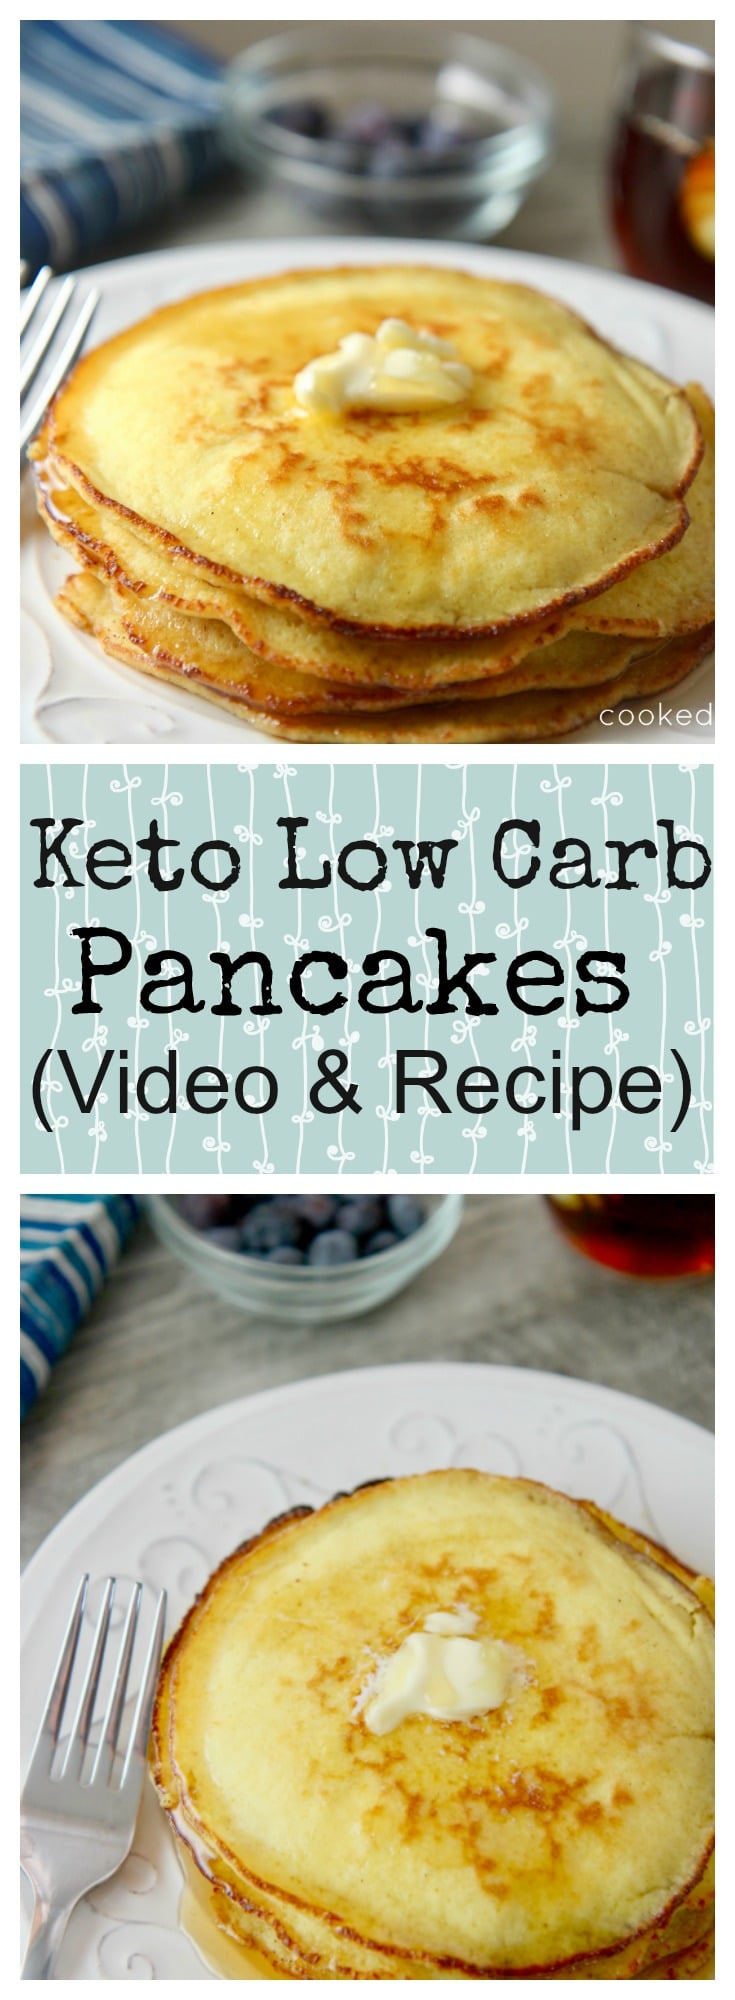 Keto Pancakes - 10 Minute Low Carb Pancake Recipe